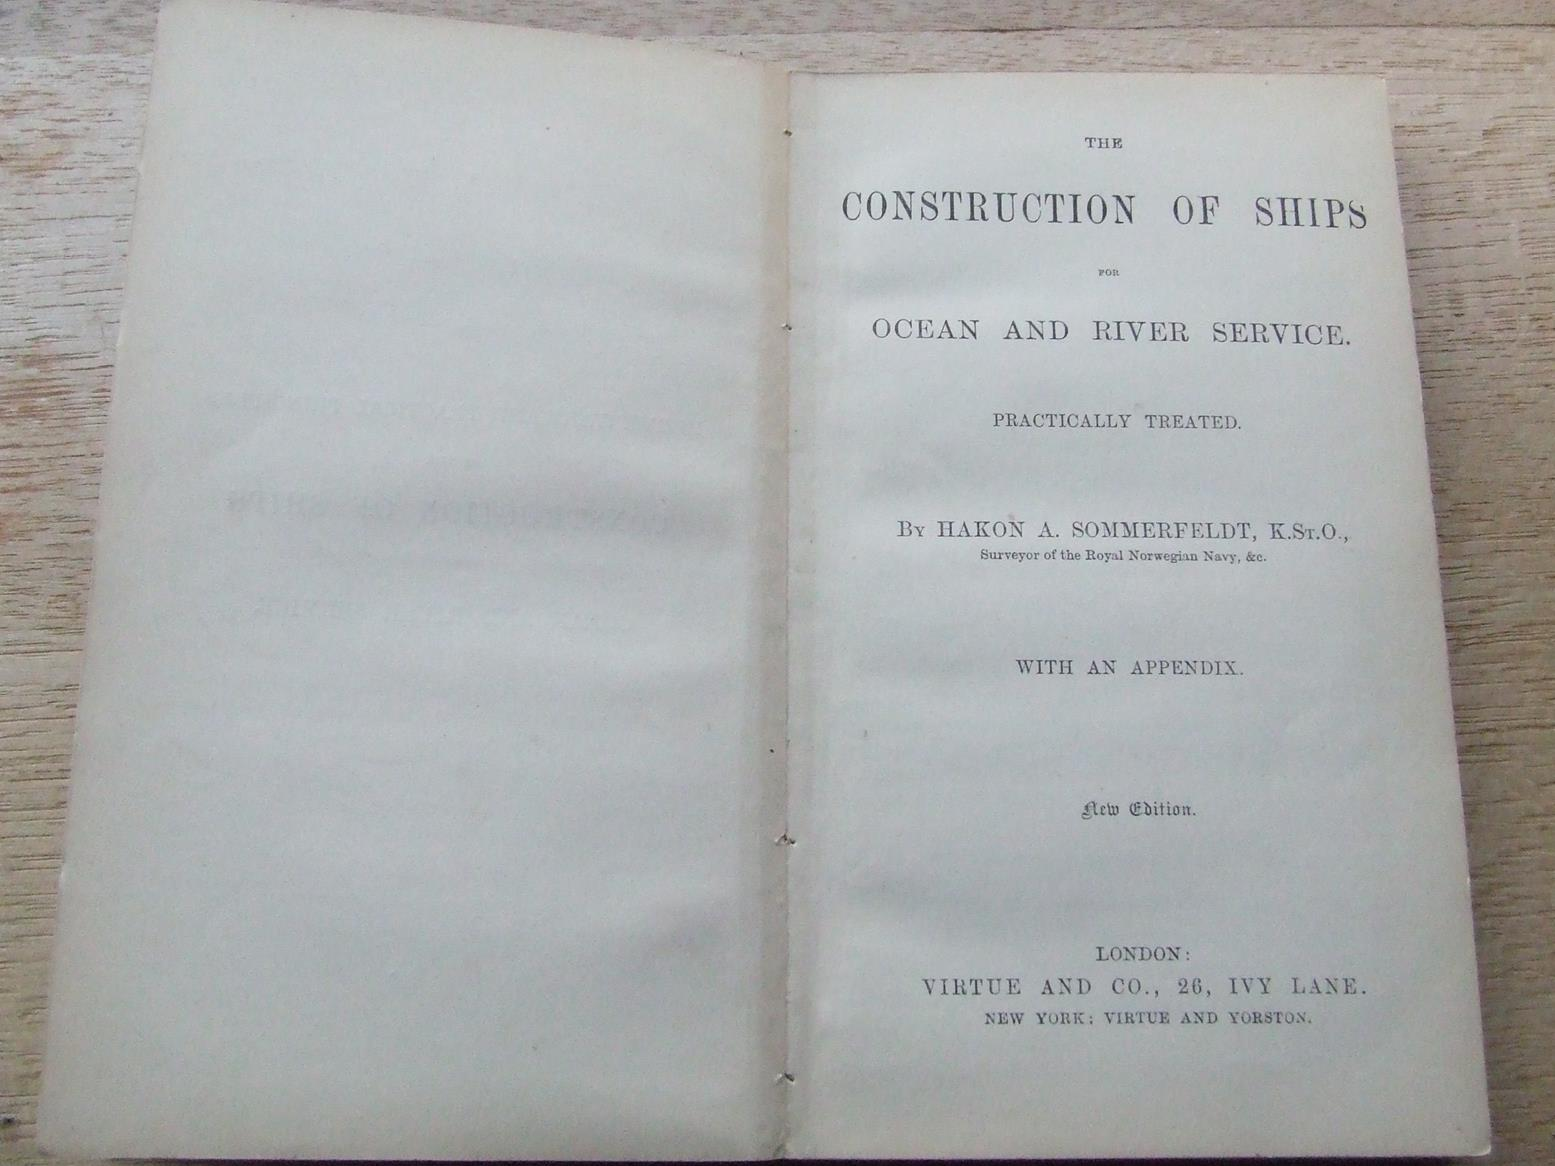 The Construction of Ships for ocean and river service, practically treated